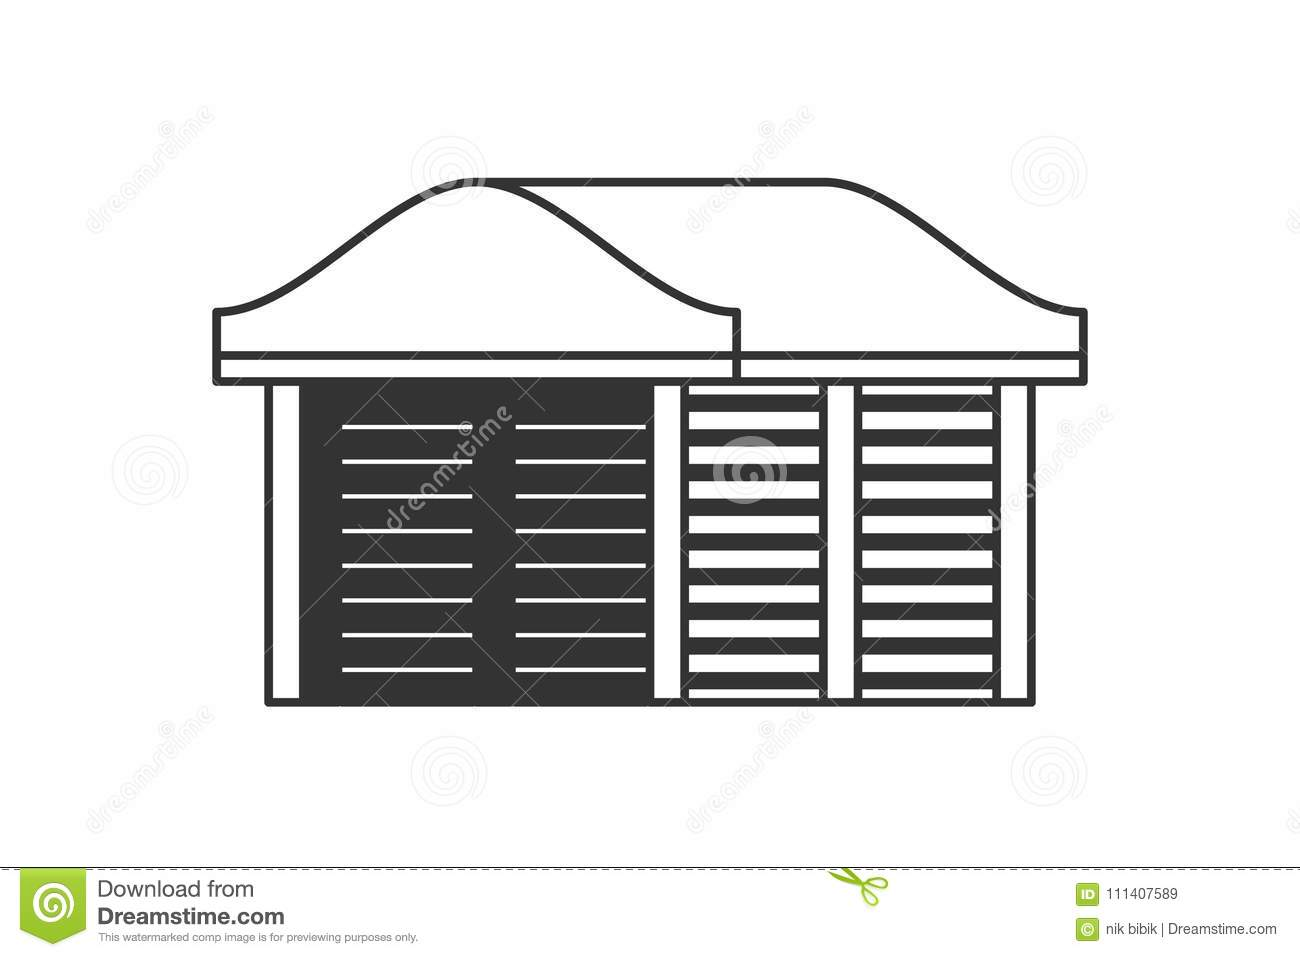 Carport For Cars At Home. Vector Carport Design In Flat Lines Stock on web design lines, clip art lines, white design lines, geometric design lines, background design lines, designs using lines, designs of lines, graphic water wavy lines, art design lines, layout design lines, graphic arts, graphic lines bars, fashion design lines, 2d design lines, graphic designs swirls, packaging design lines, simple design lines, logo design lines, bold design lines, classic design lines,